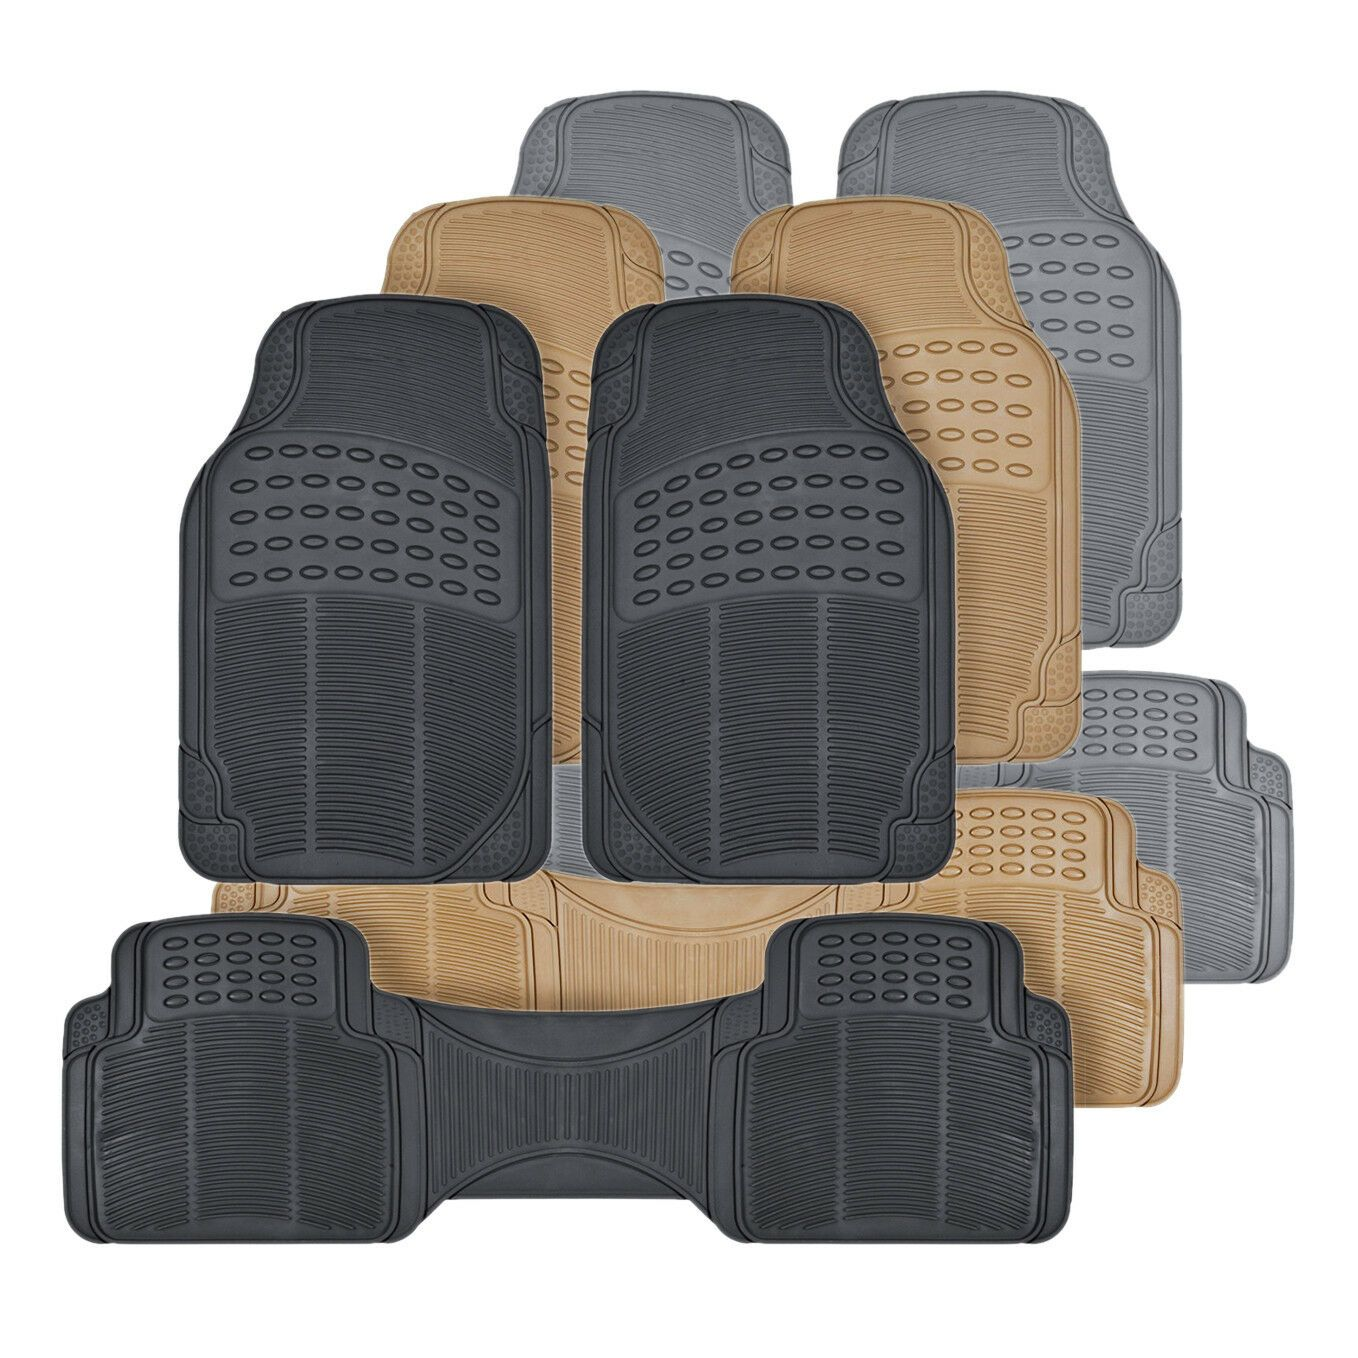 Details About All Weather 3pc Rubber Car Floor Mats And Row Liner Trimmable Front Rear Car Floor Mats Custom Car Floor Mats Floor Mats